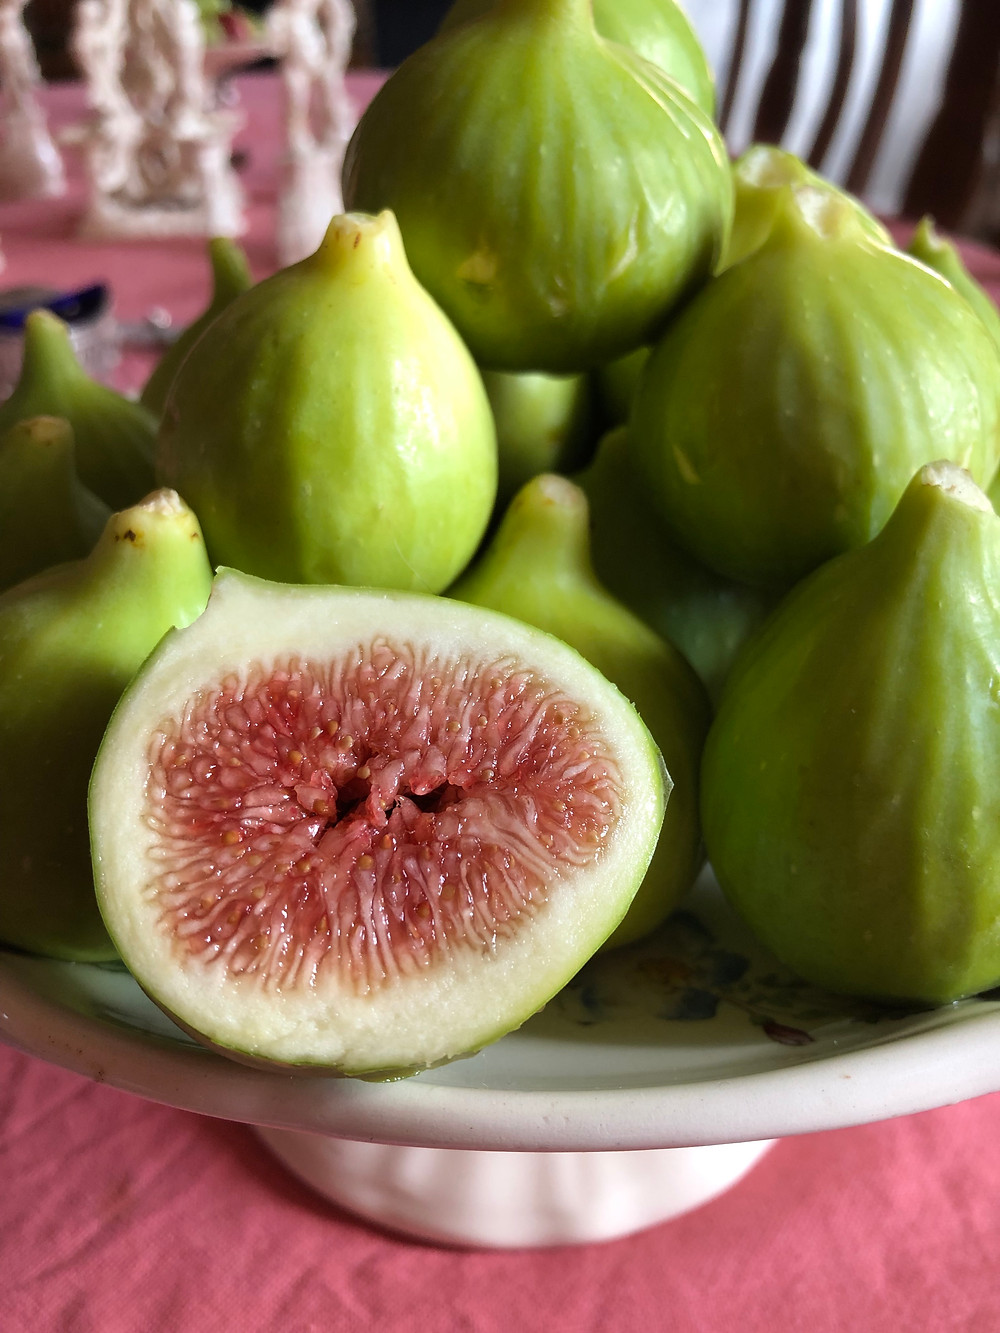 green, ripe figs, one cut in half, on a plate